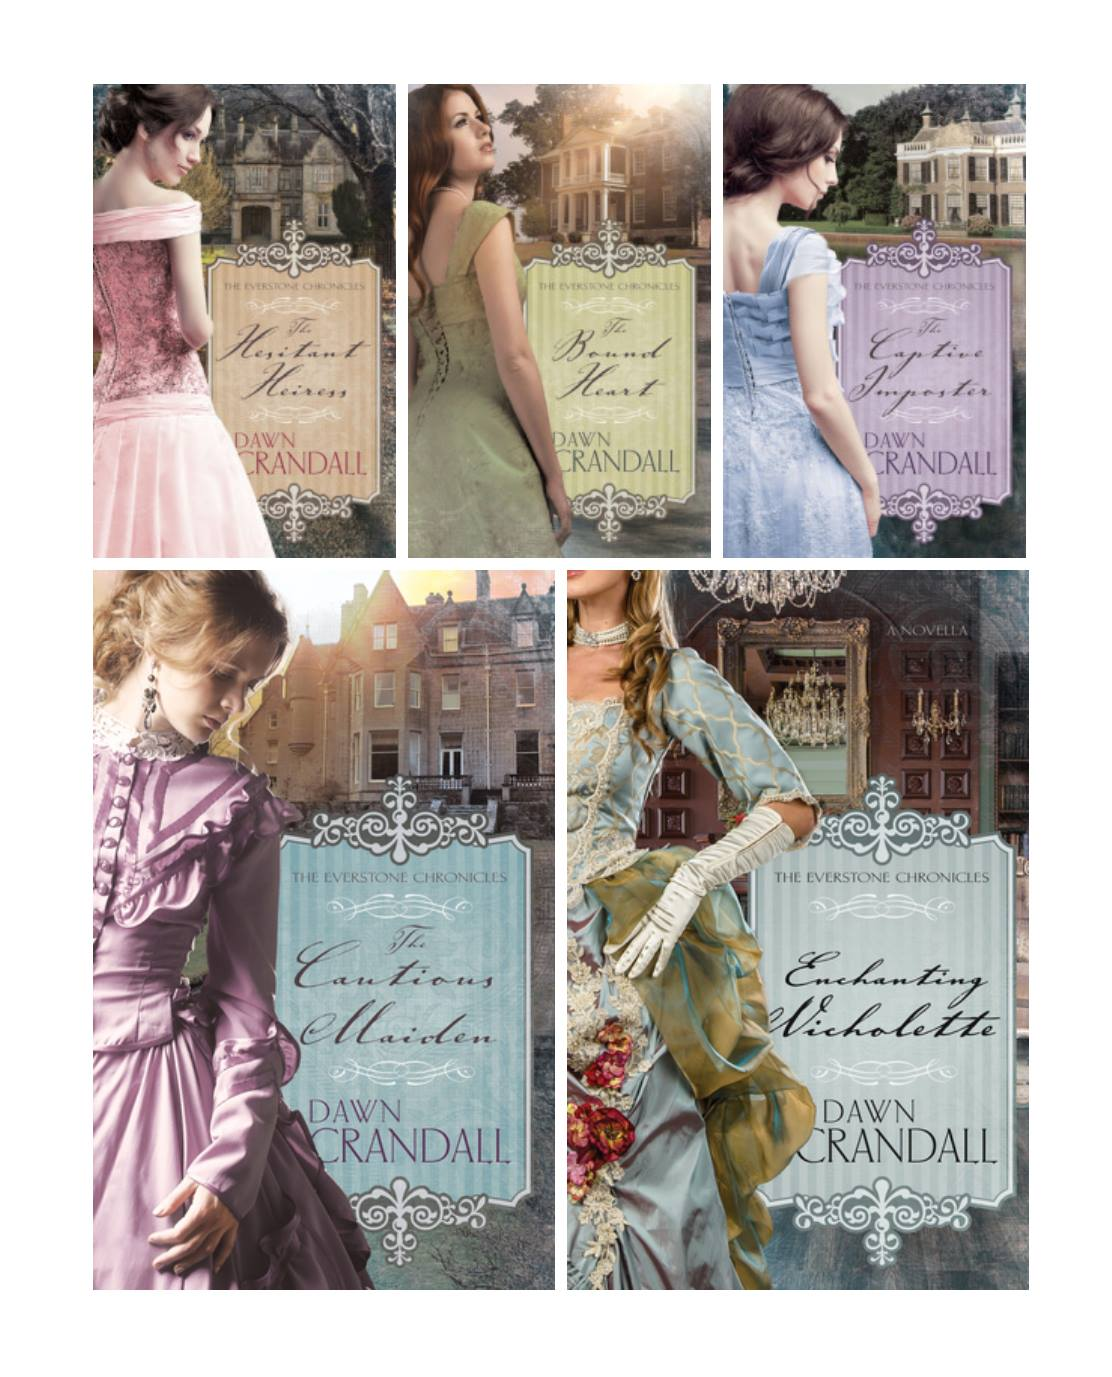 Order the Entire 5 book series for $53!